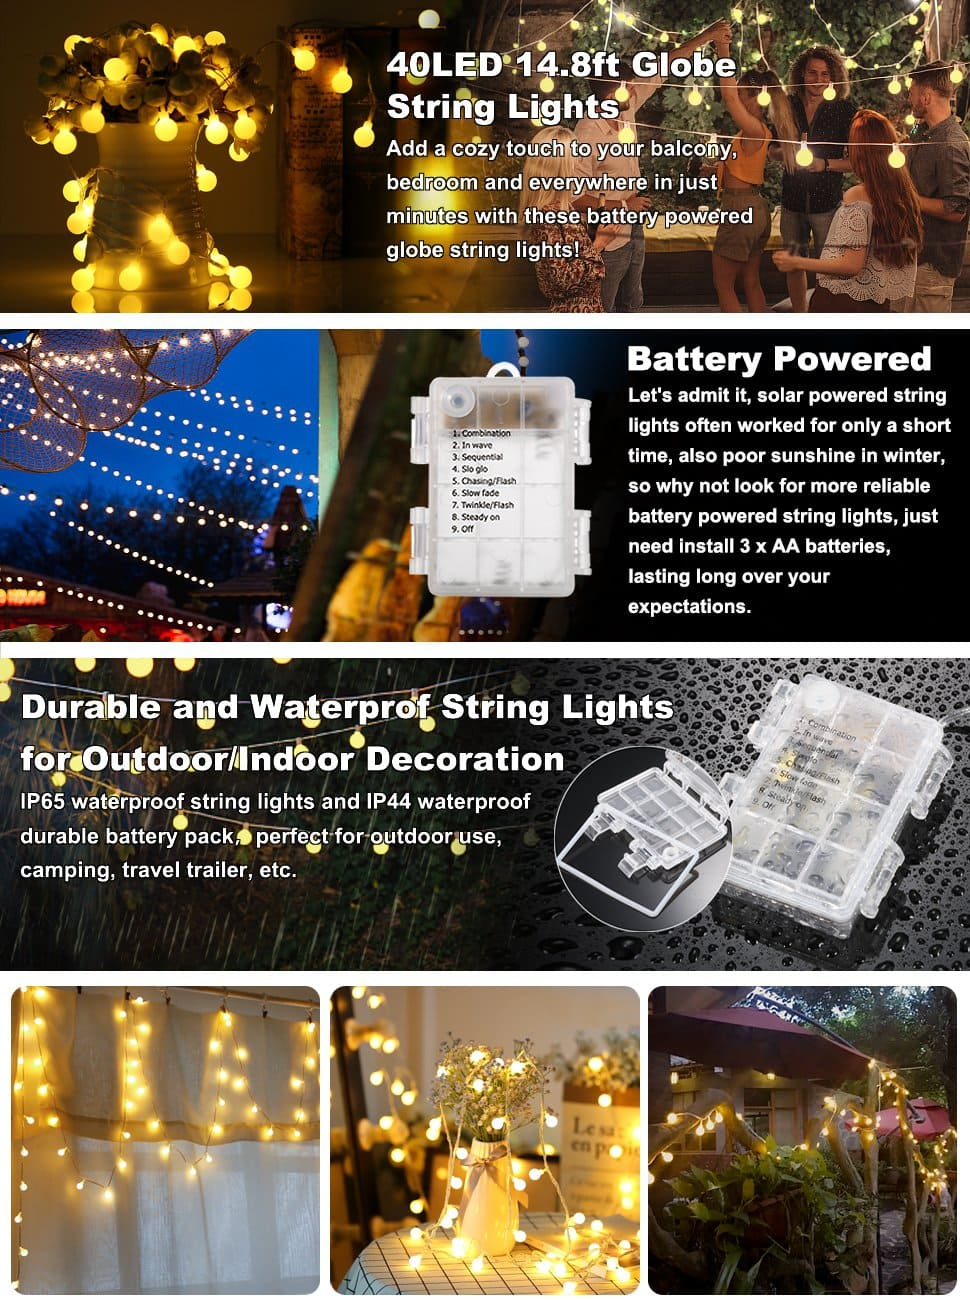 battery powered led globe string lights for 549 ac on amazon - Battery Christmas Lights Amazon